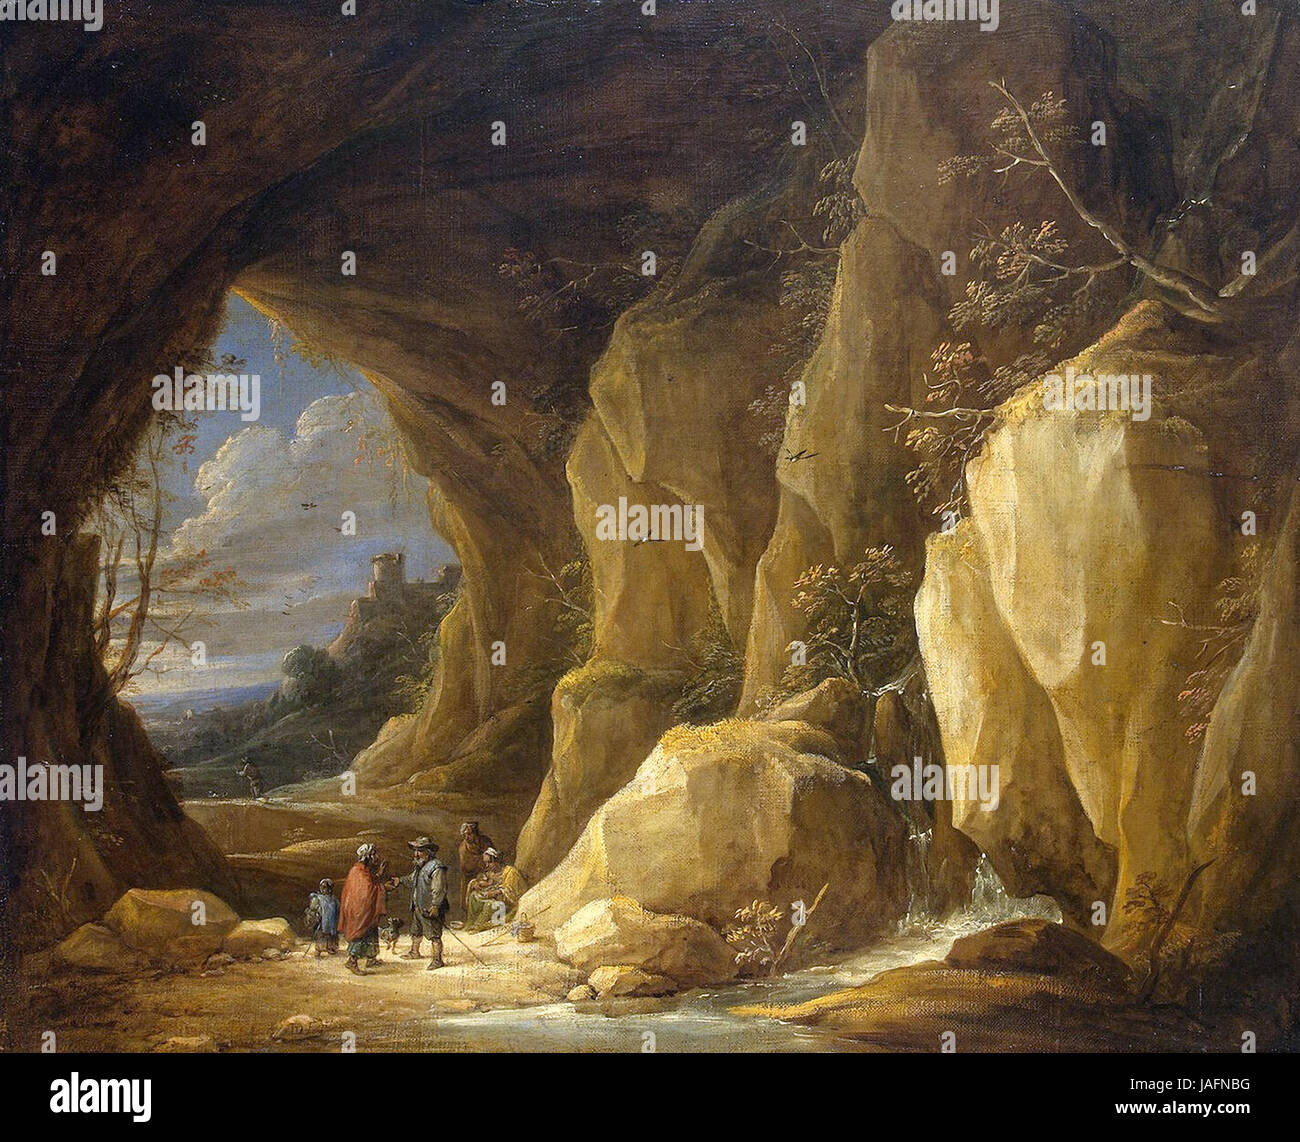 David Teniers the Younger - Landscape with a Grotto and a Group of Gipsies - Stock Image